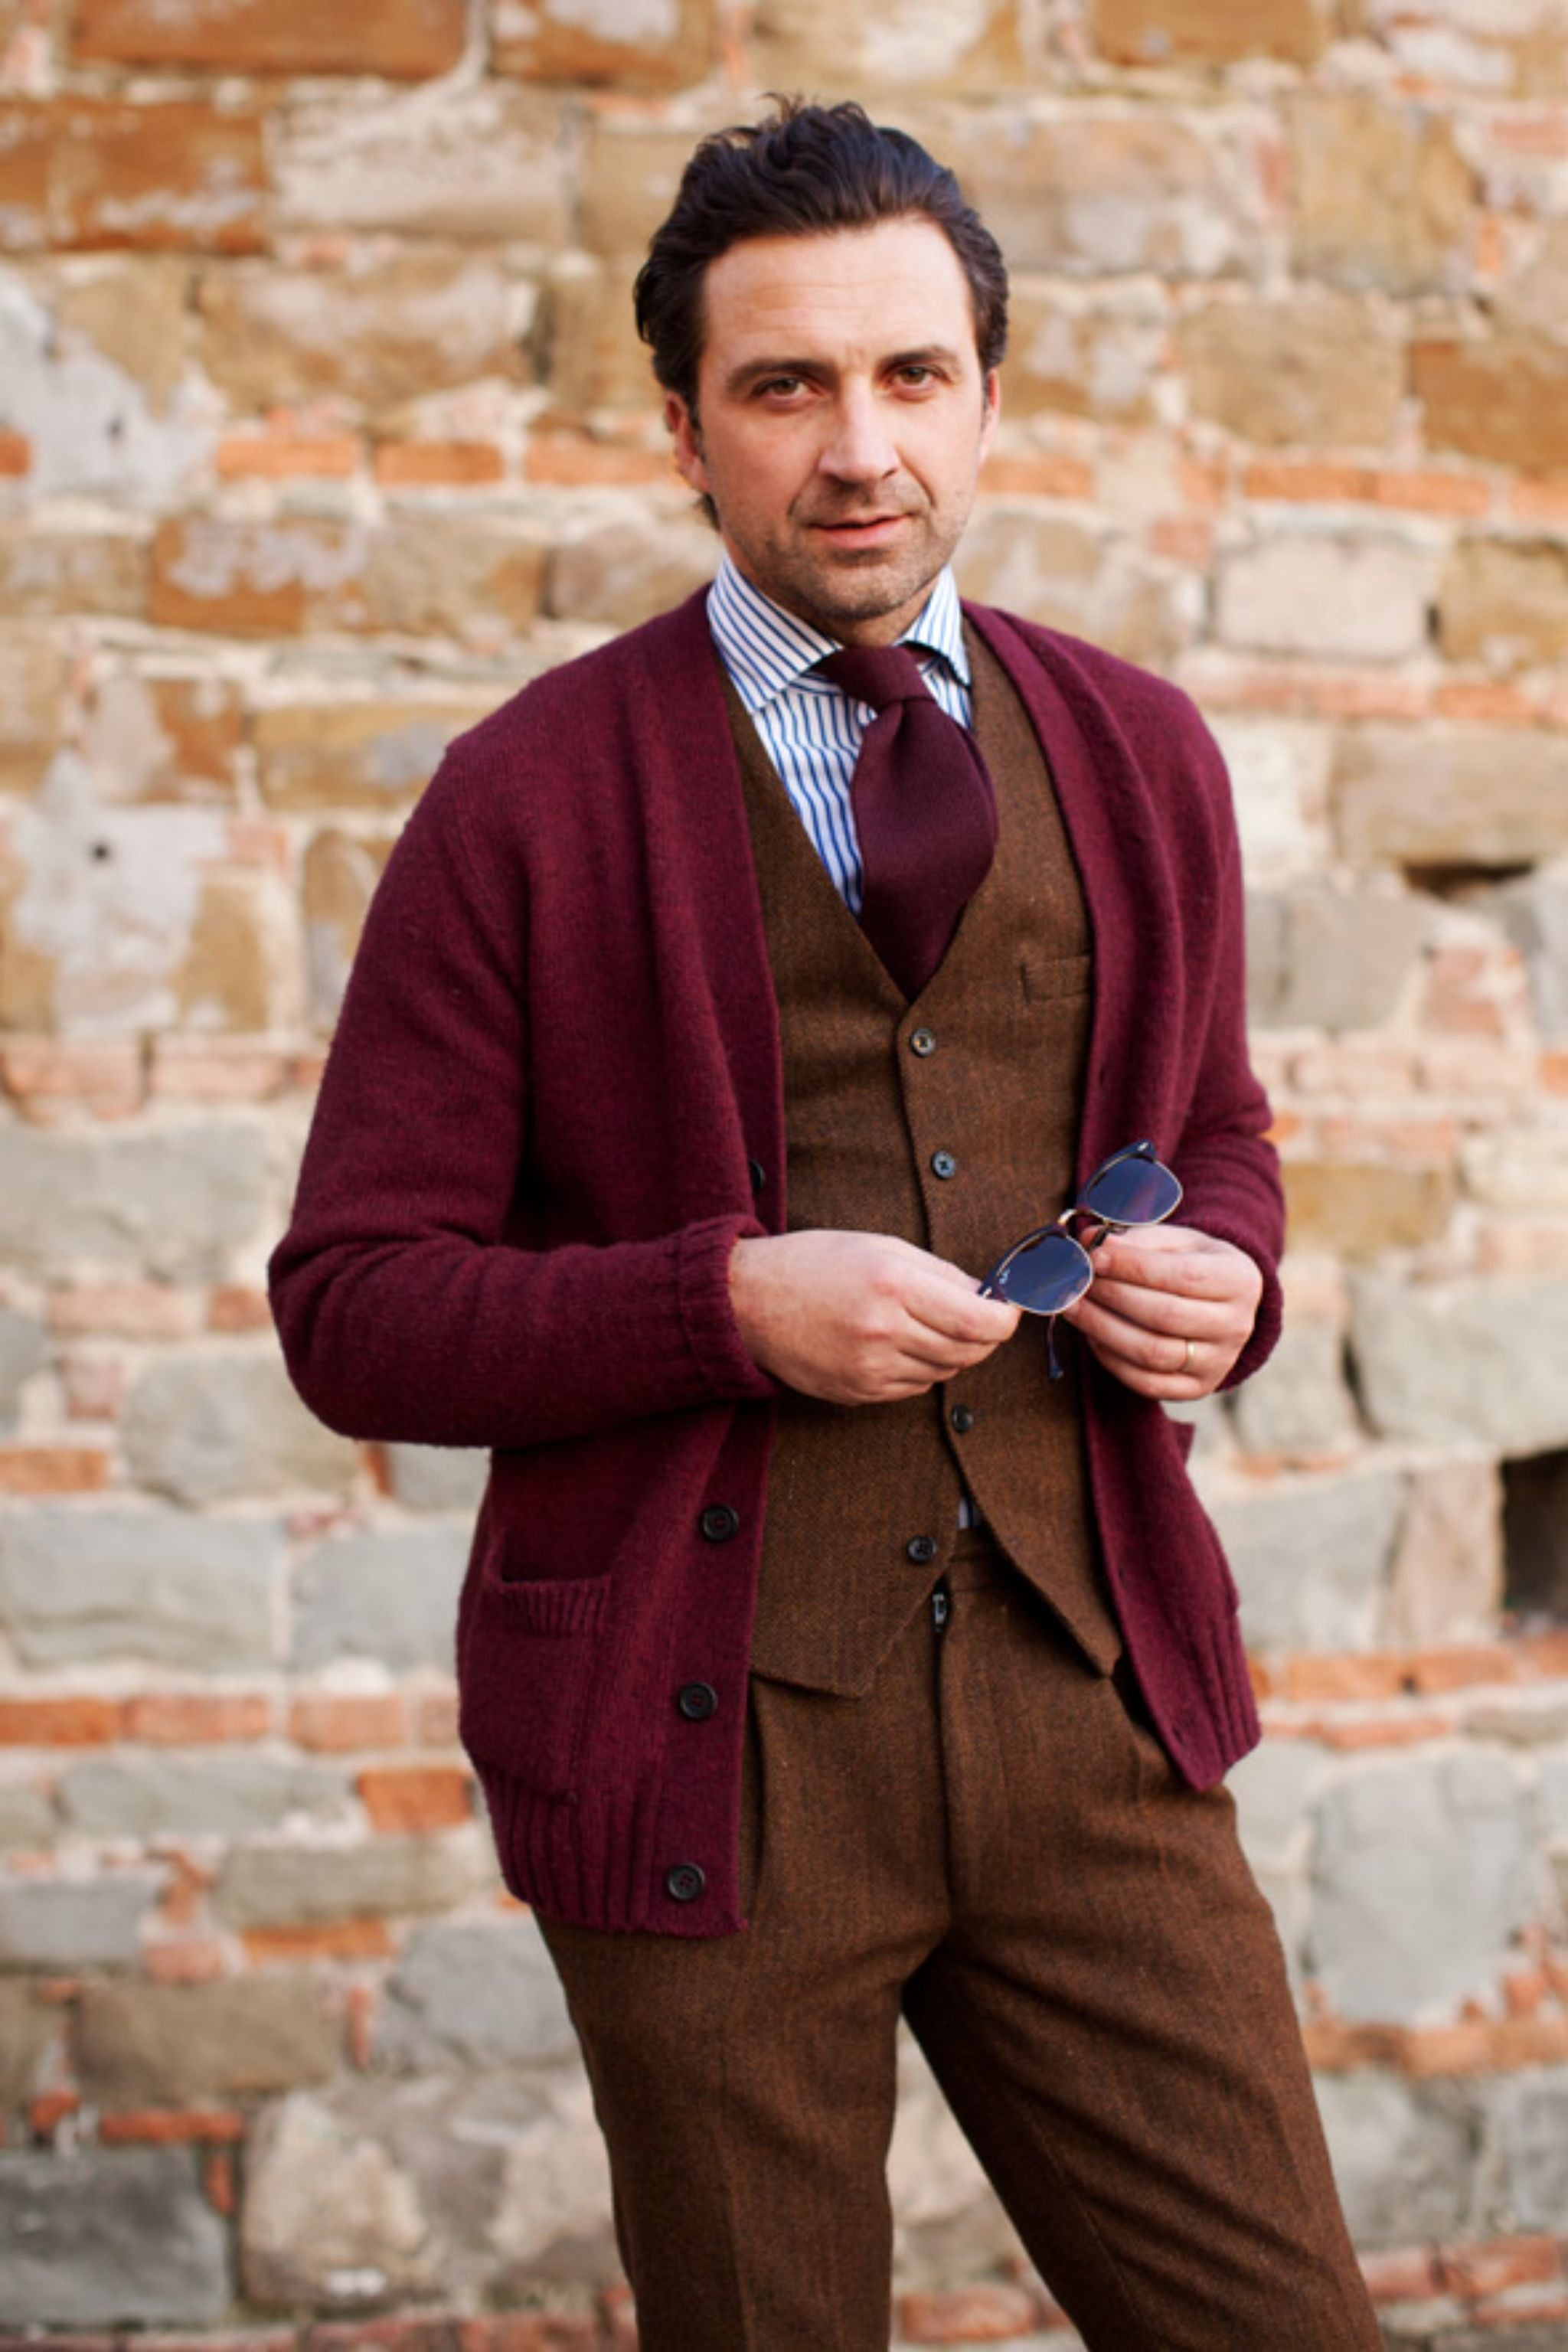 How about dressing down by replacing your three-piece suit jacket with a cardigan? Inspiring color-play with the tones of brown and burgundy. Pic by The Sartorialist.